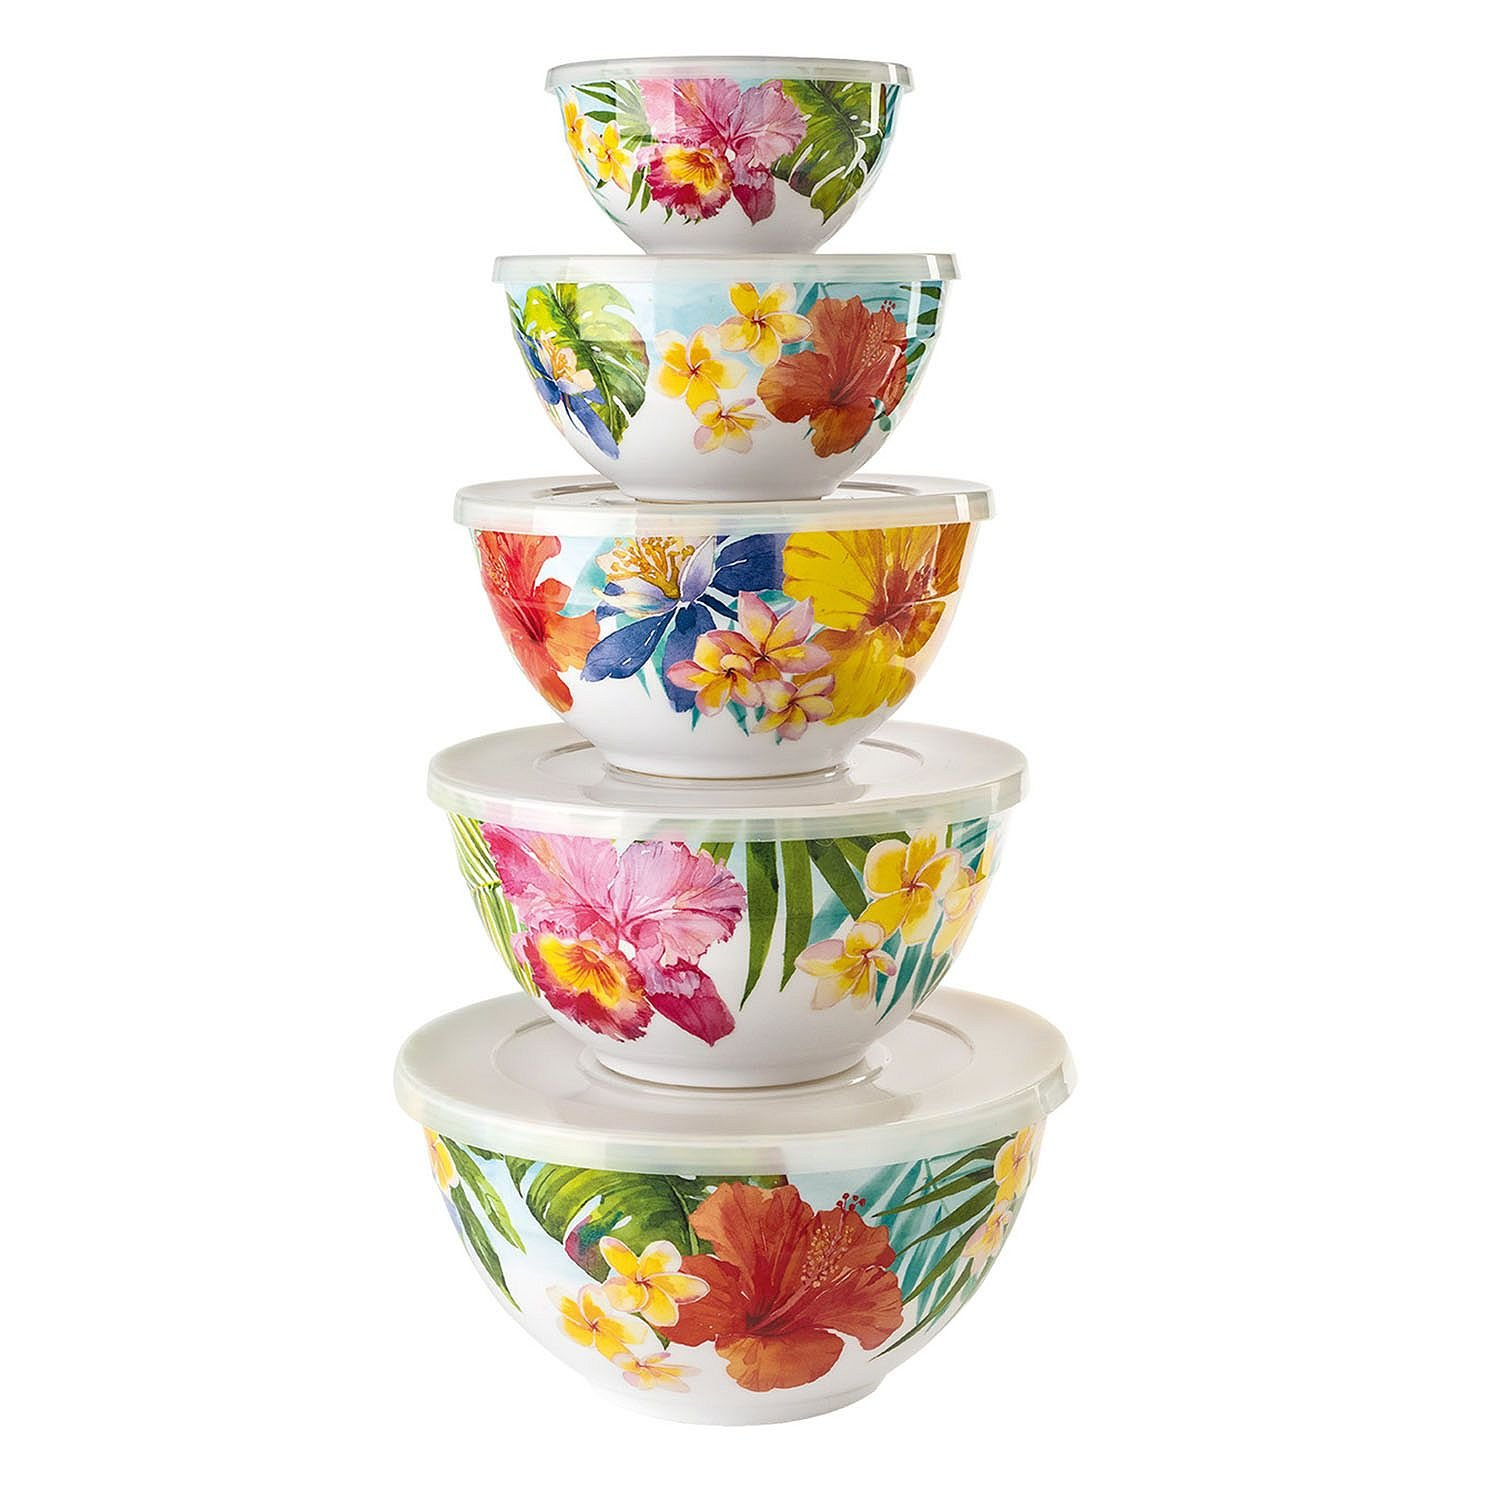 Melamine 10-Piece Mixing Bowl Set - Tropical by Member's Mark (Image #2)